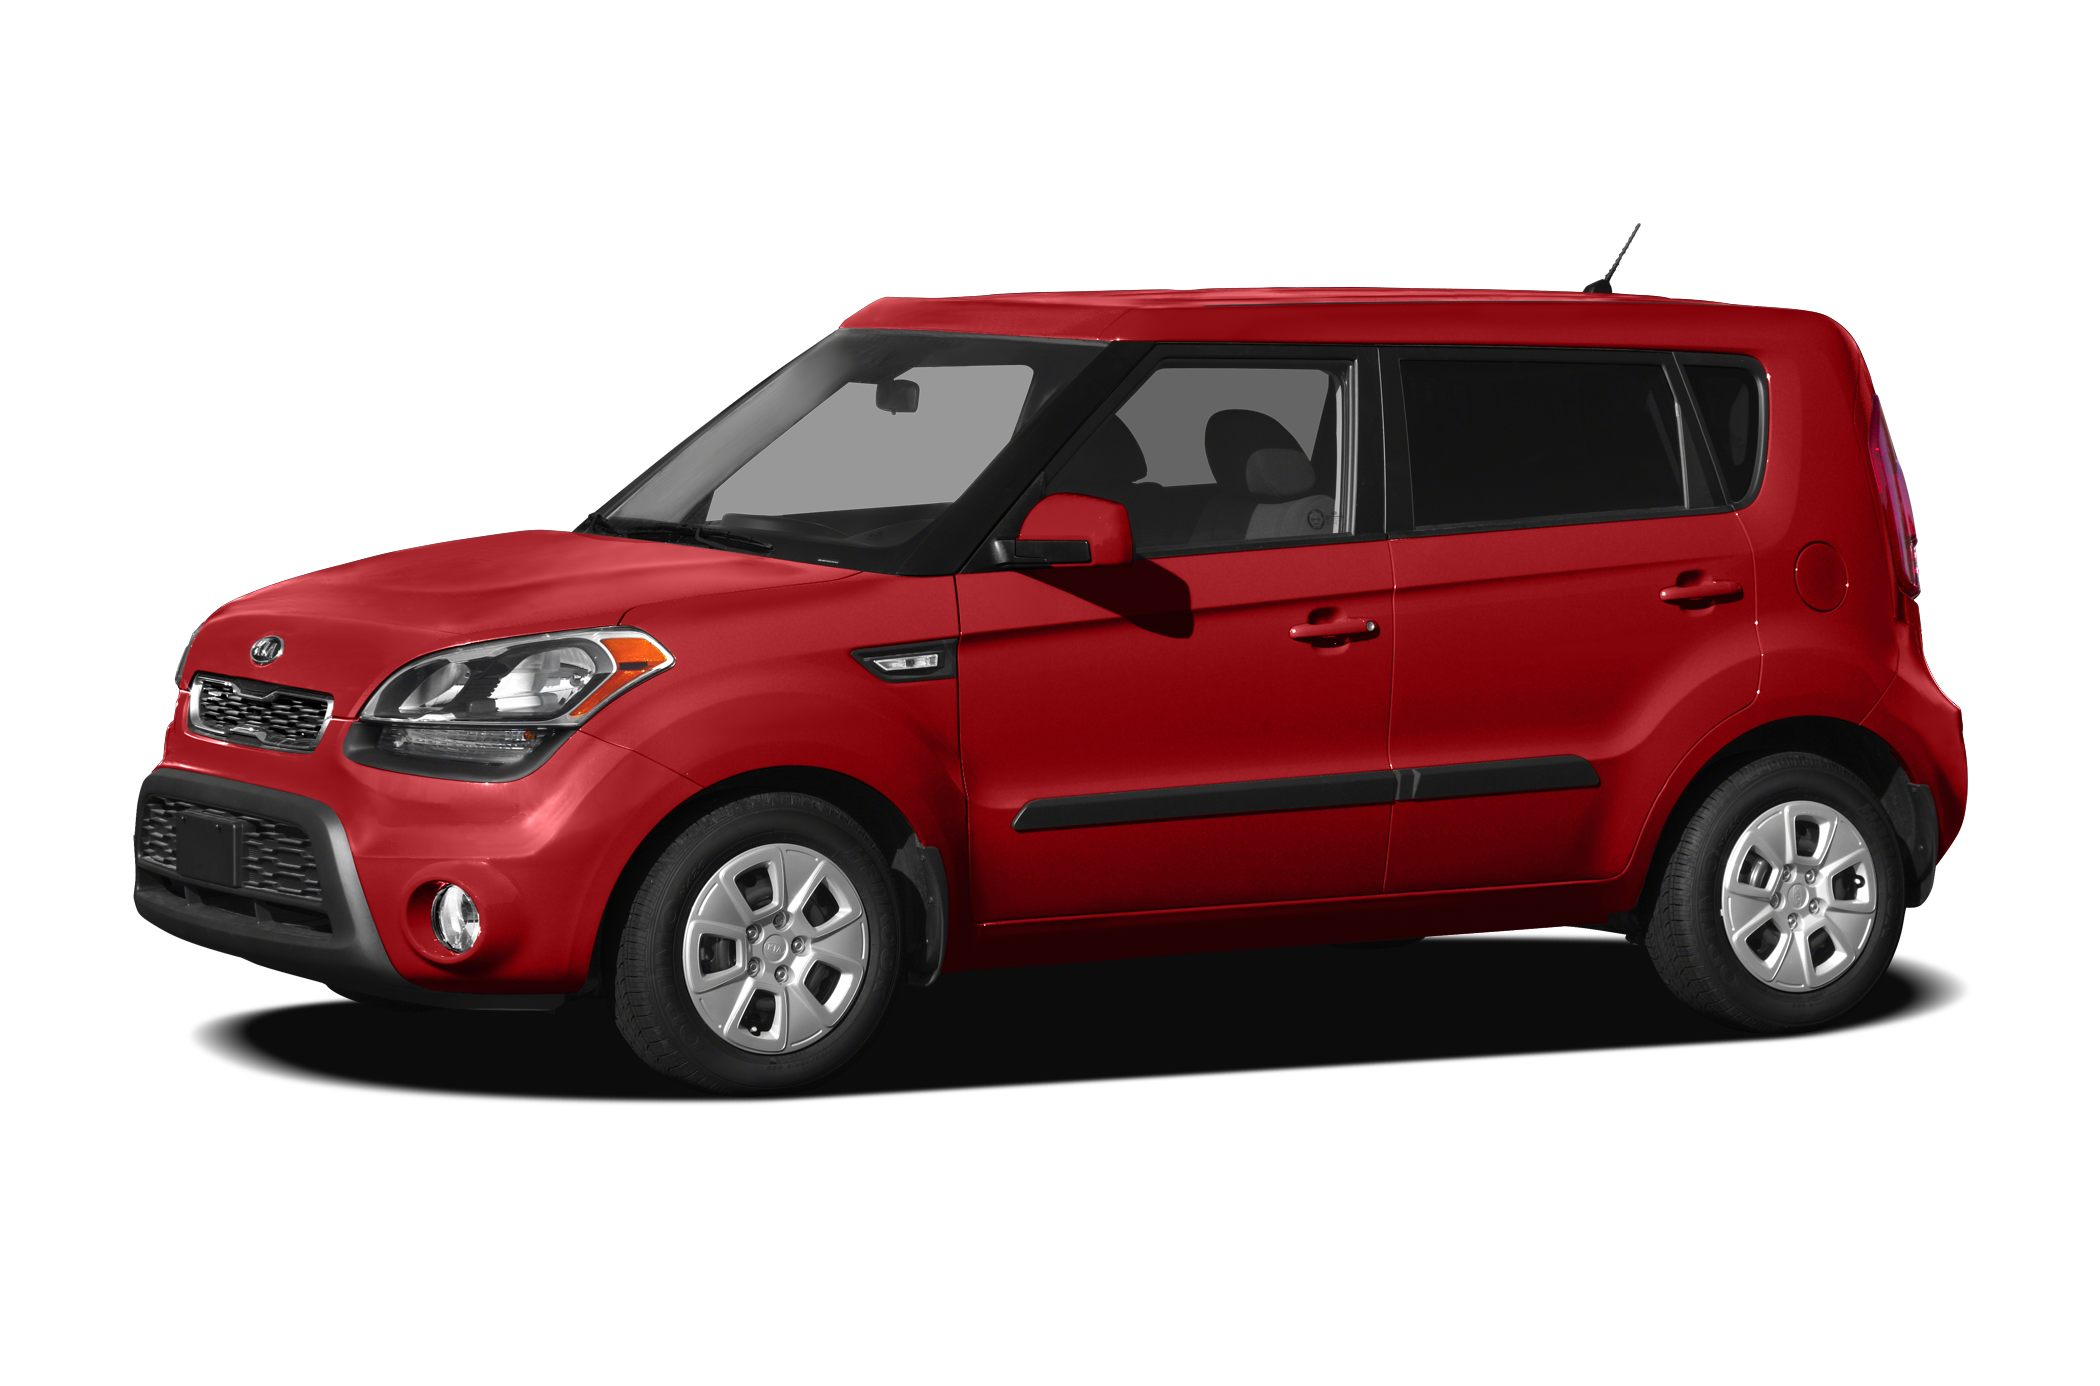 2012 Kia Soul + Wagon for sale in Pembroke Pines for $13,991 with 27,037 miles.